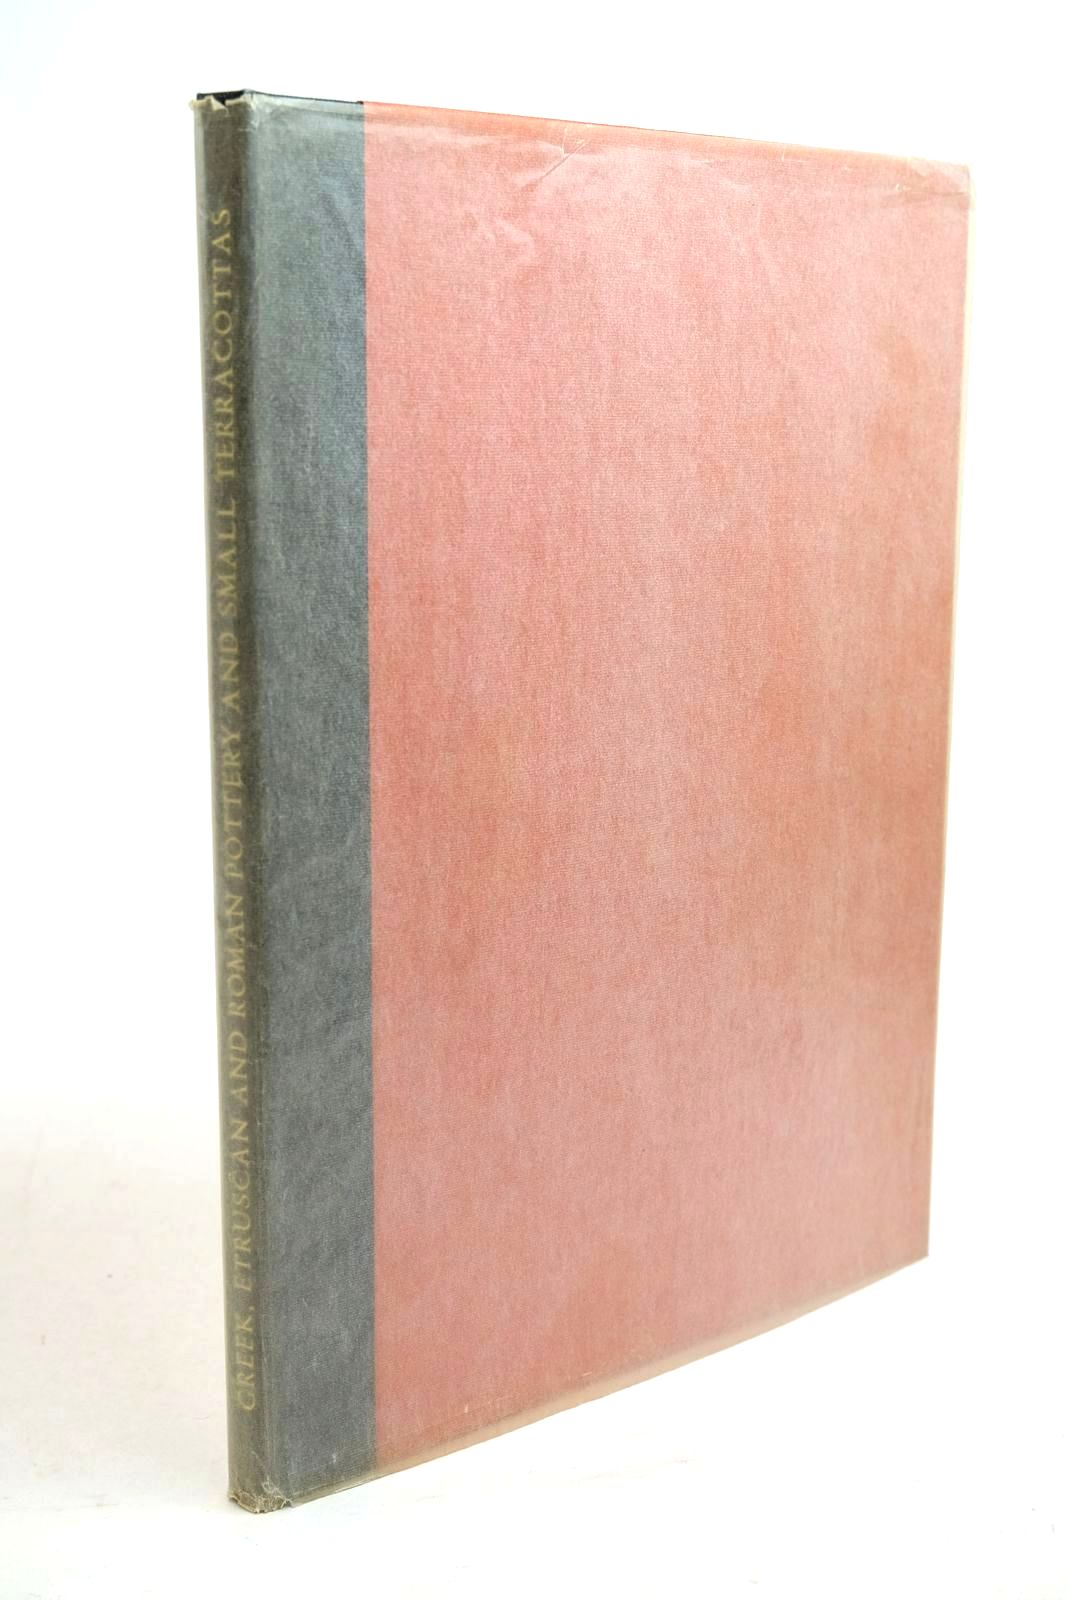 Photo of GREEK, ETRUSCAN AND ROMAN POTTERY AND SMALL TERRACOTTAS written by Nicholson, Felicity published by Folio Society, Collectors' Corner (STOCK CODE: 1321330)  for sale by Stella & Rose's Books